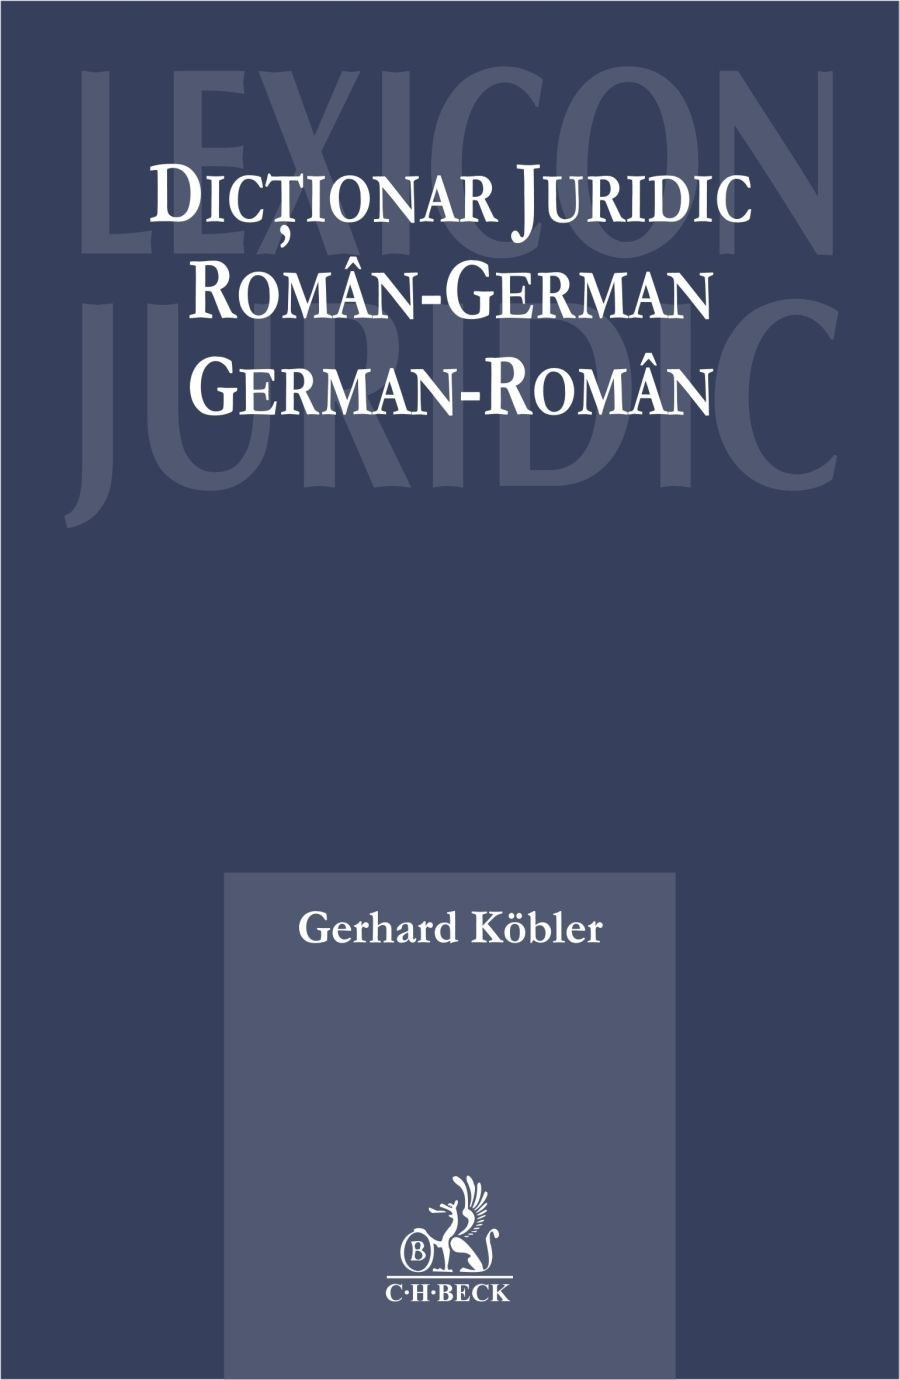 Dictionar juridic roman - german, german - roman